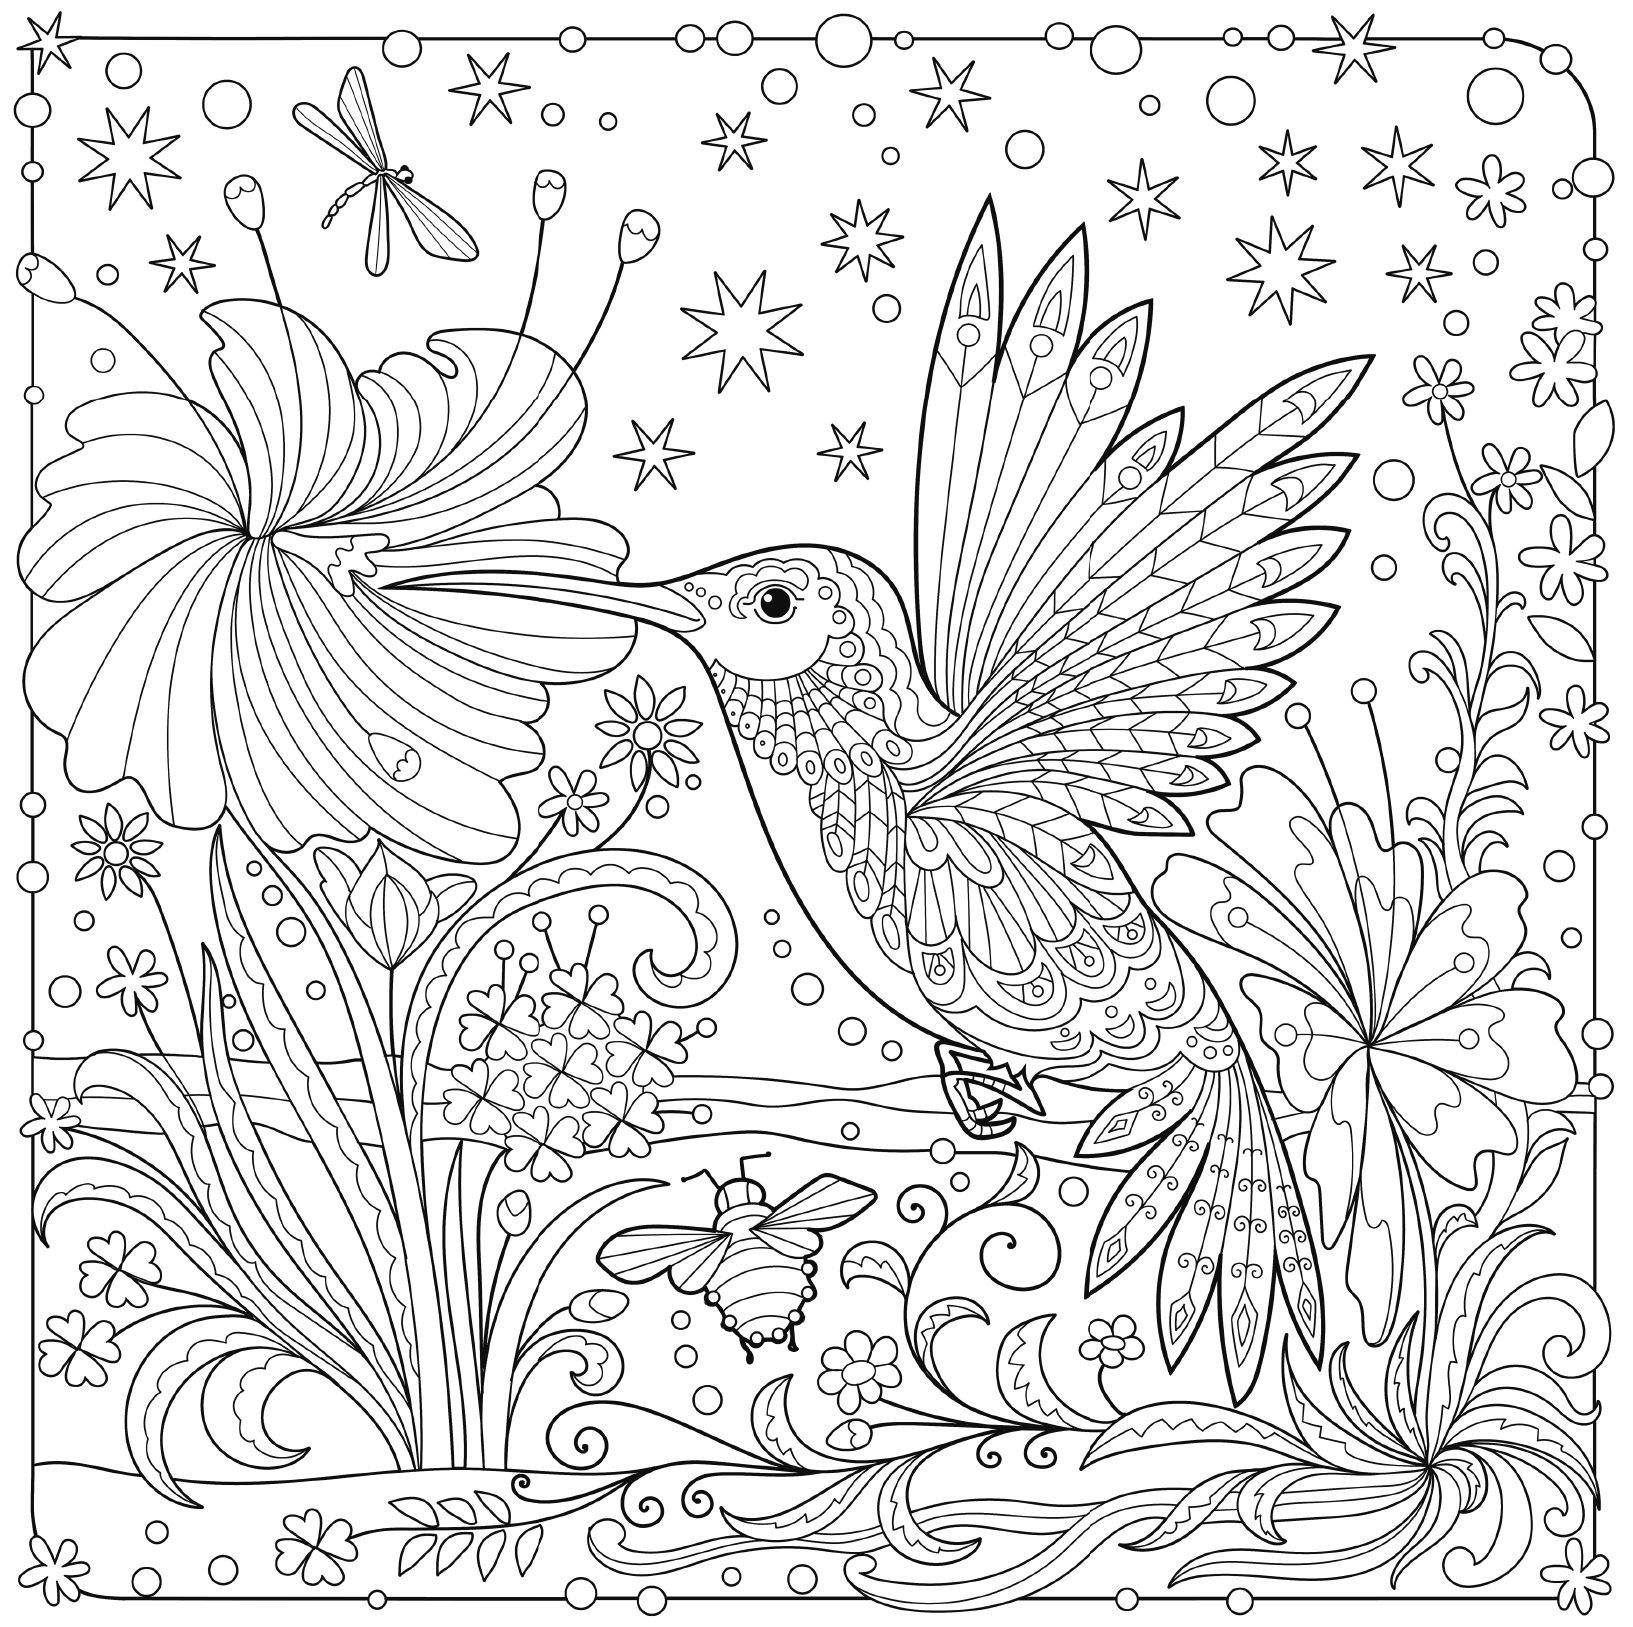 Coloring Pages Image By Cole